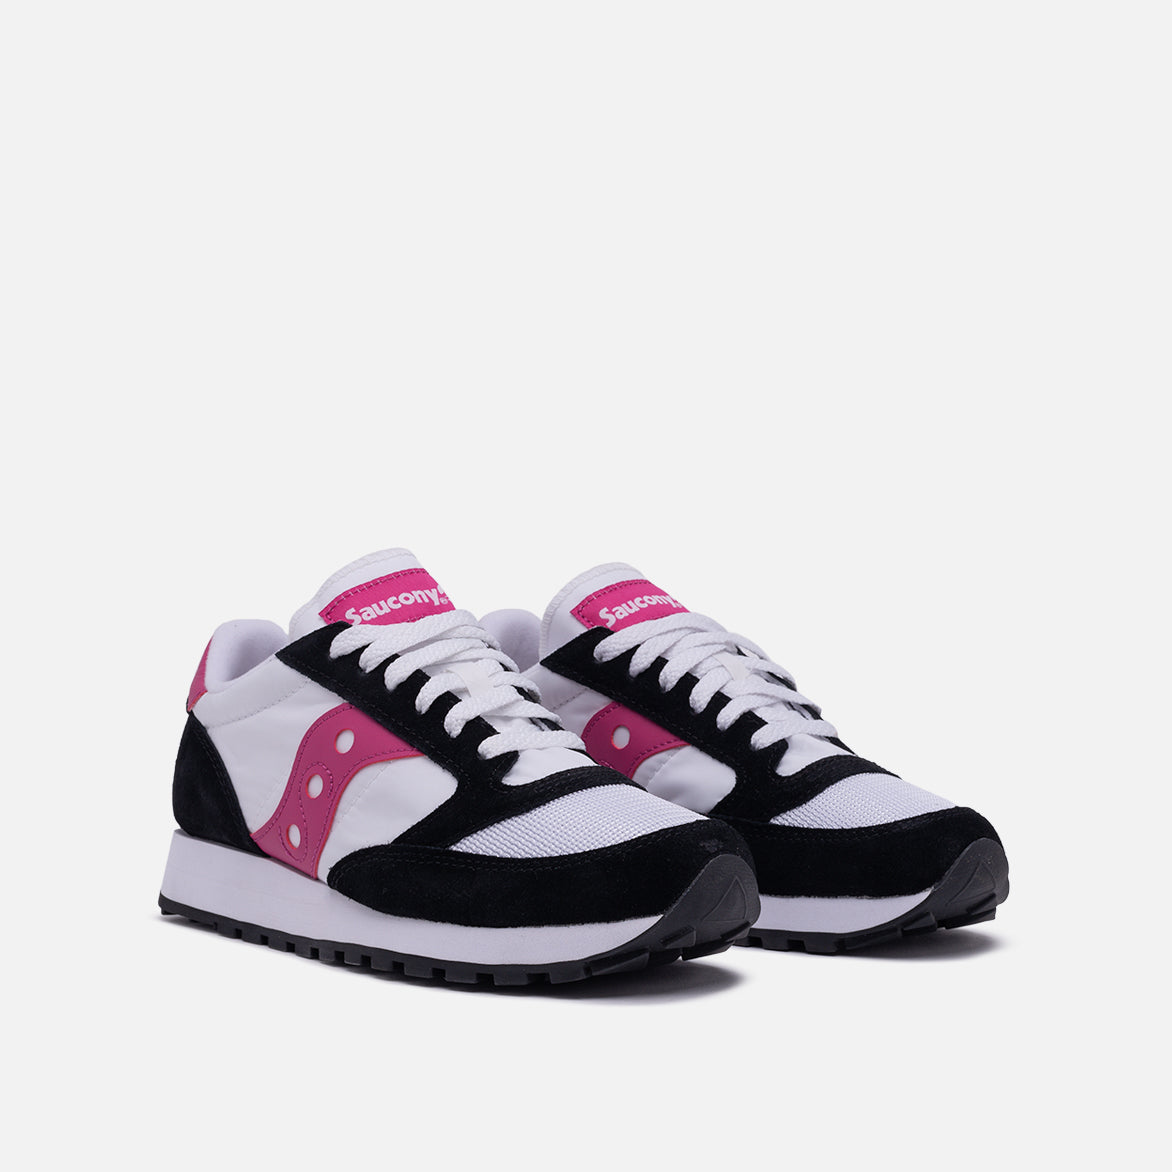 WMNS JAZZ ORIGINAL VINTAGE - BLACK / WHITE / BERRY